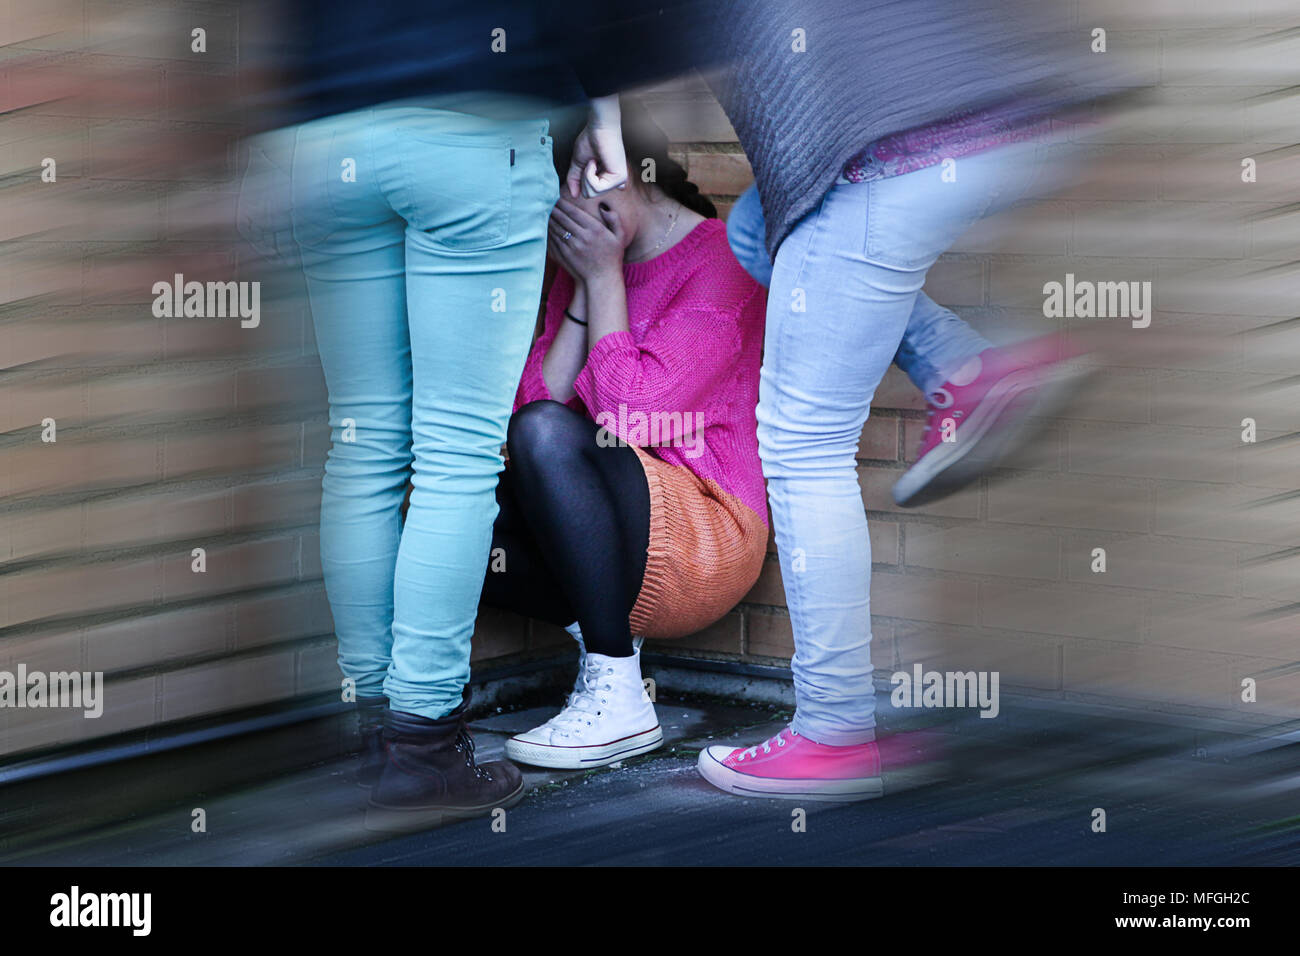 Teenage girls bullying and kicking a girl sitting down covering her face, crying. Blurred. - Stock Image